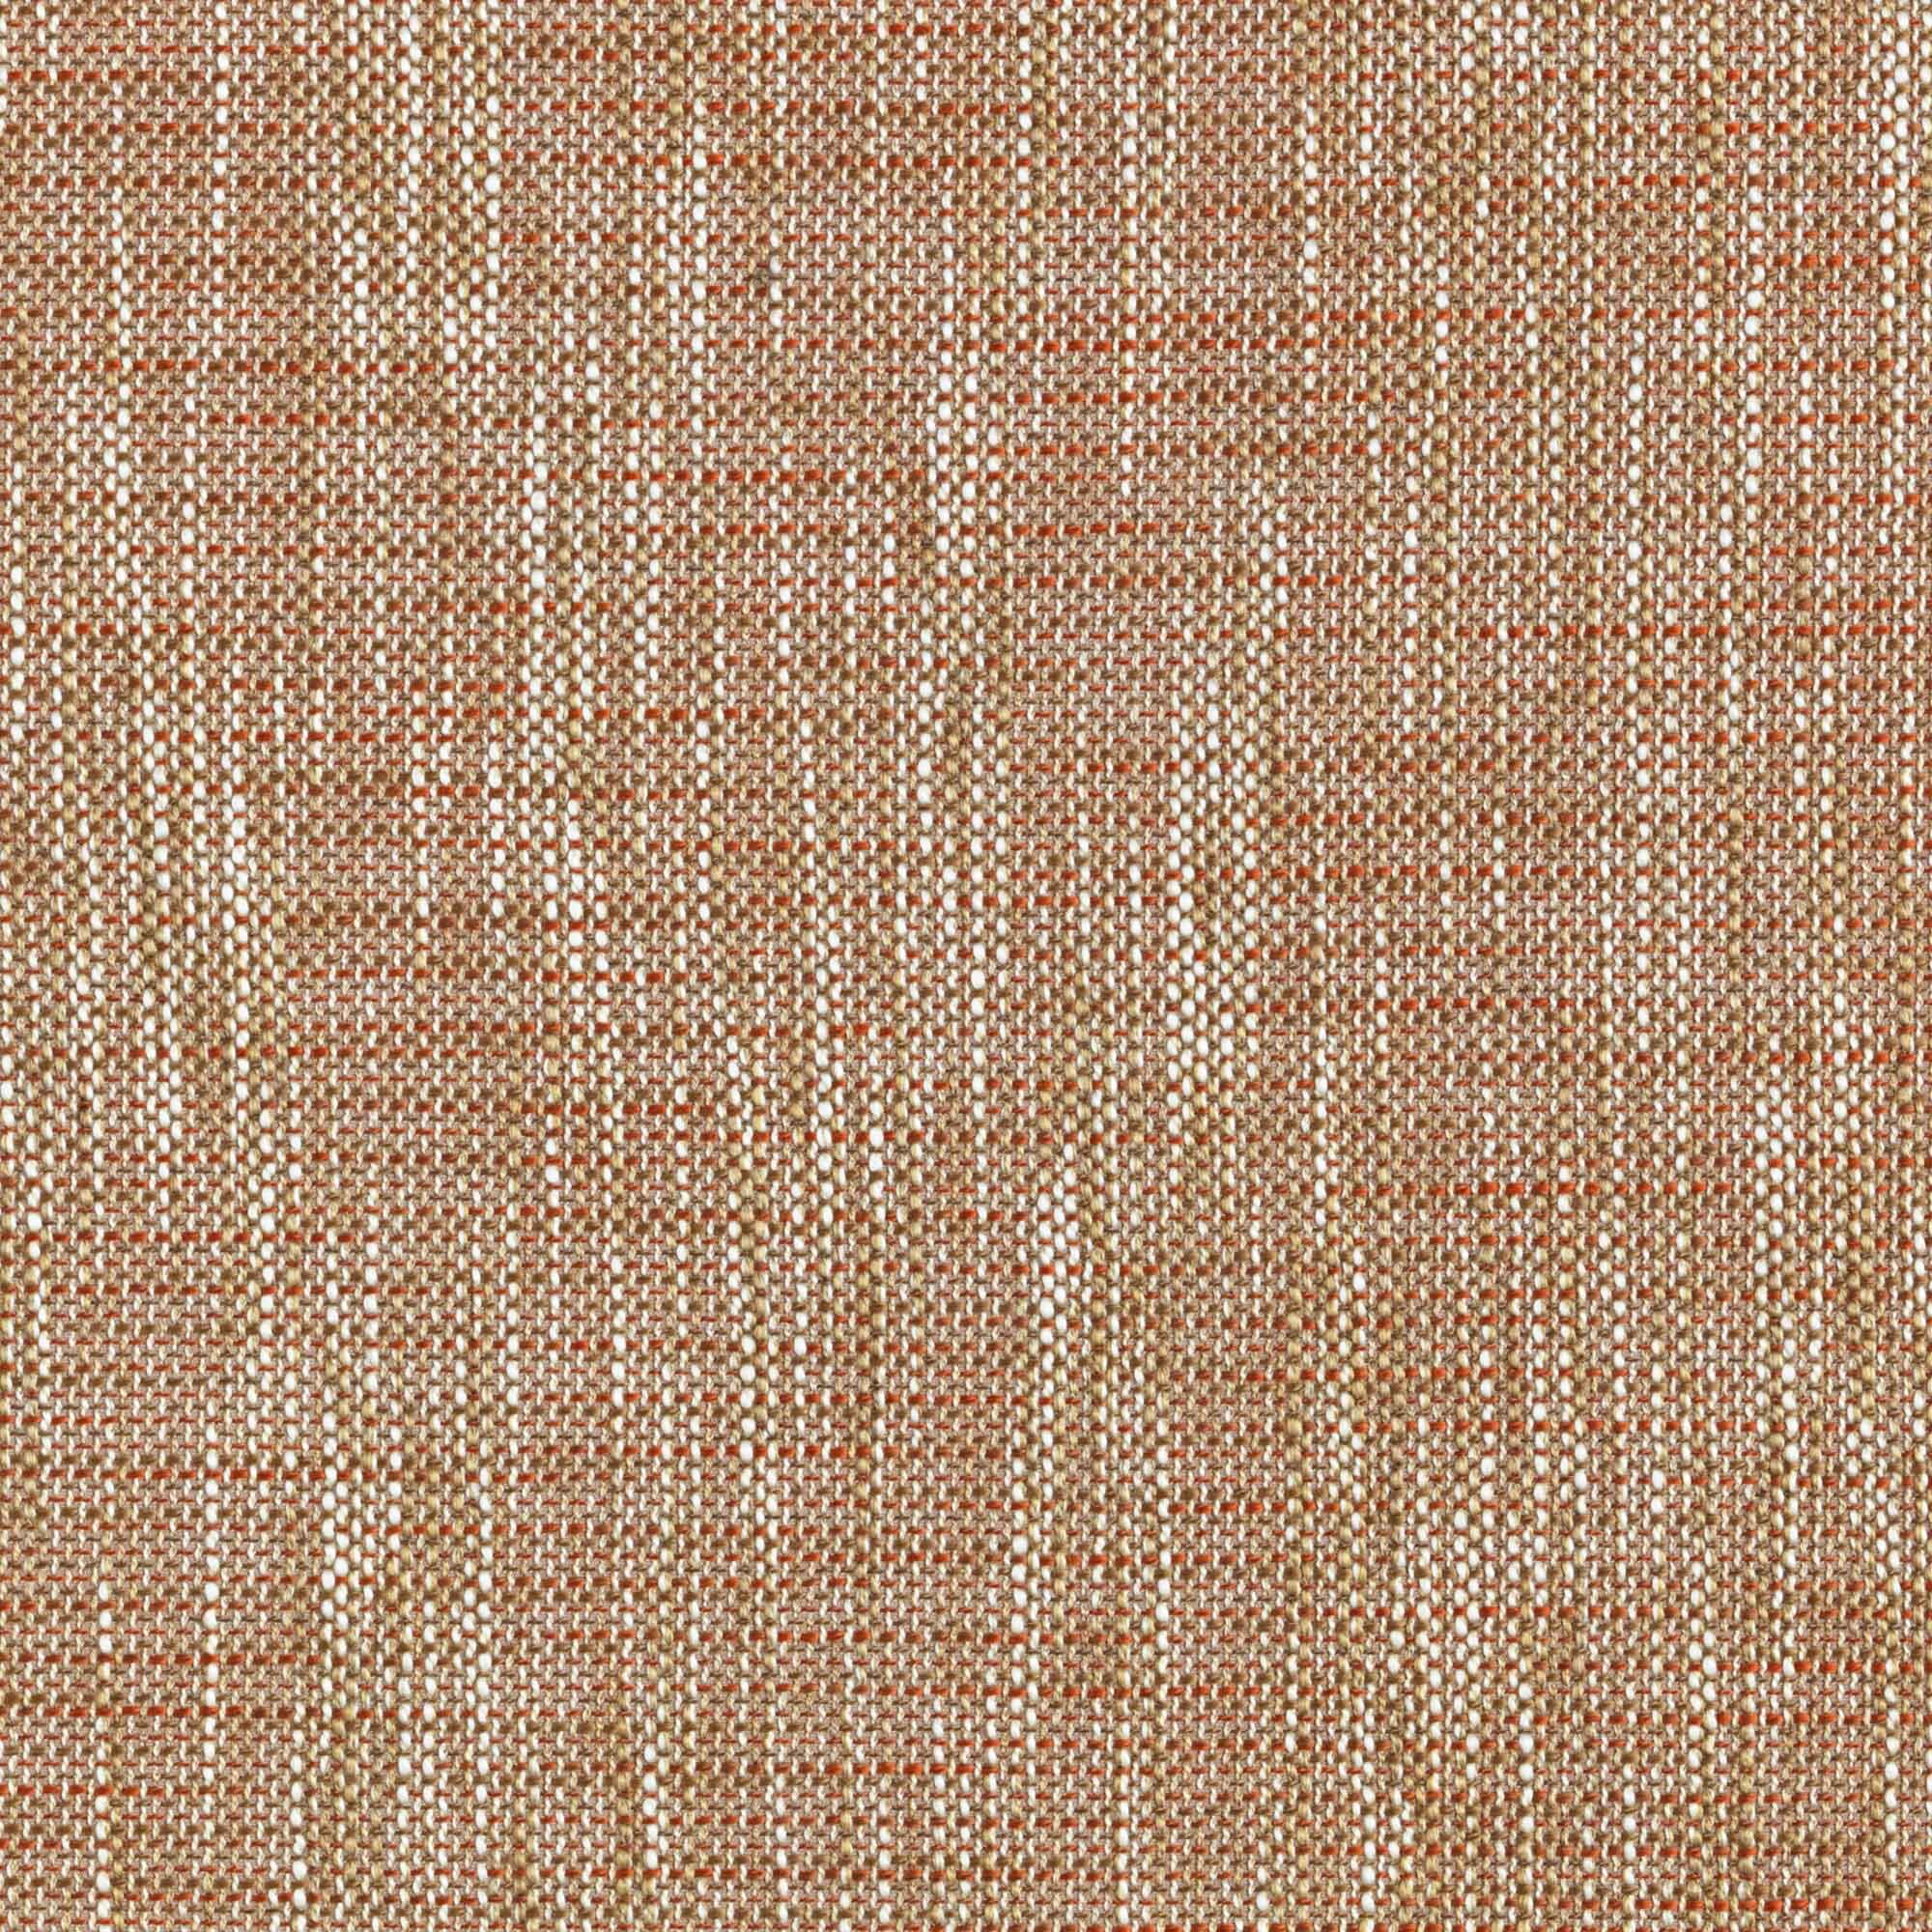 Orange Eastern Accents Fabric By The Yard You Ll Love In 2021 Wayfair